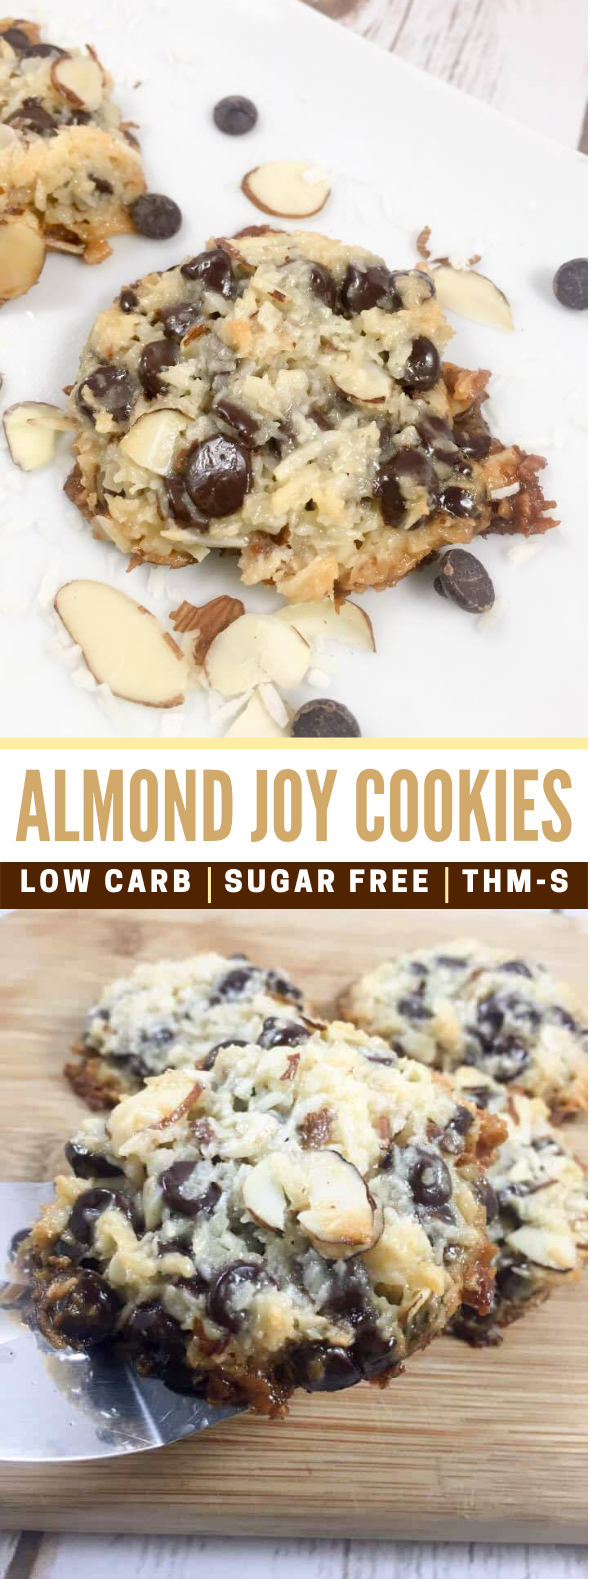 Almond Joy Cookies {Low Carb, Sugar Free, THM-S} #diet #healthydessert